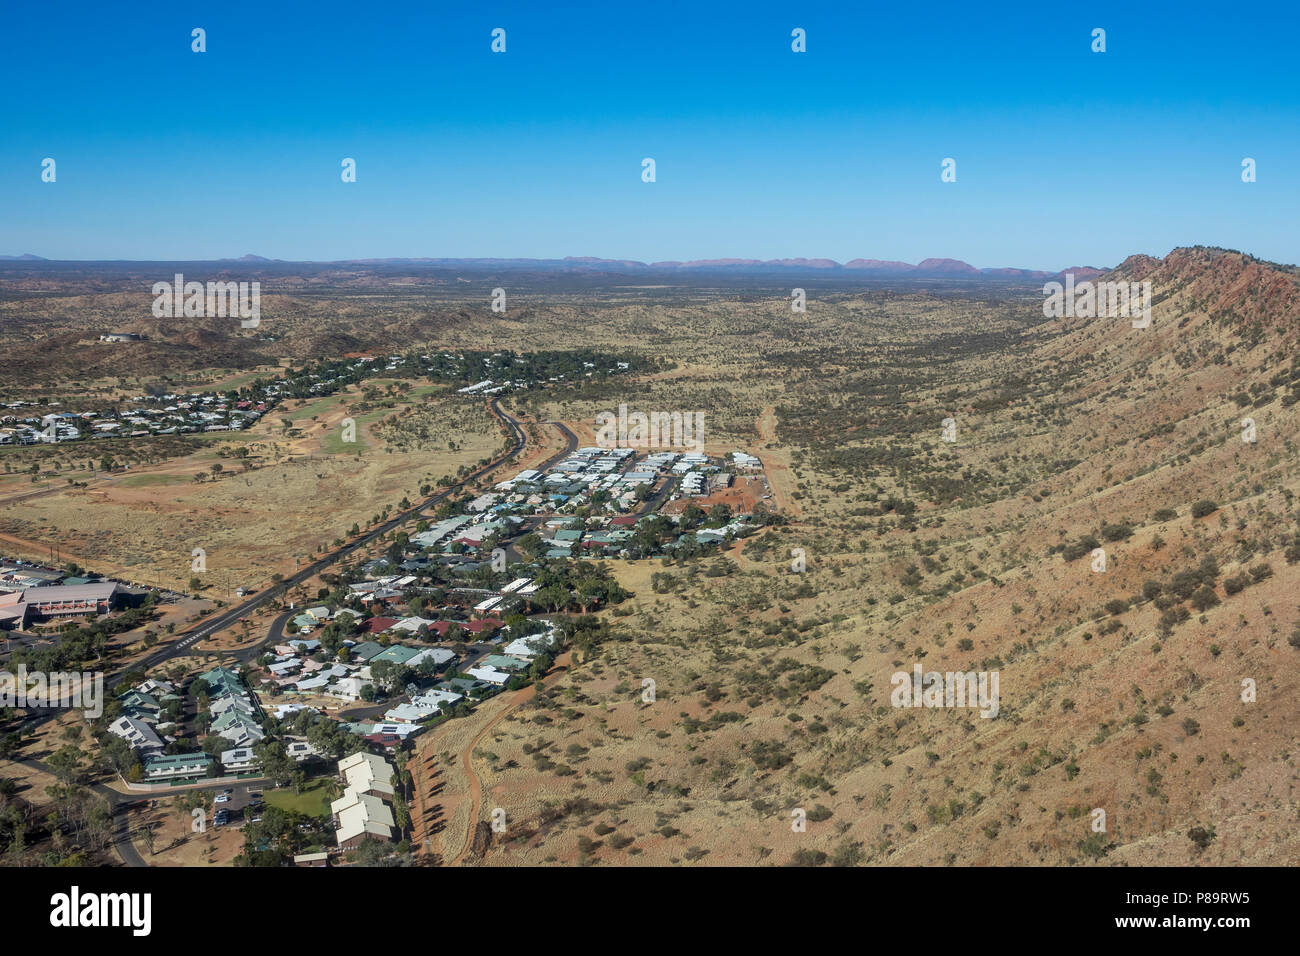 Aerial view over Alice Springs, Northern Territory, Australia - Stock Image